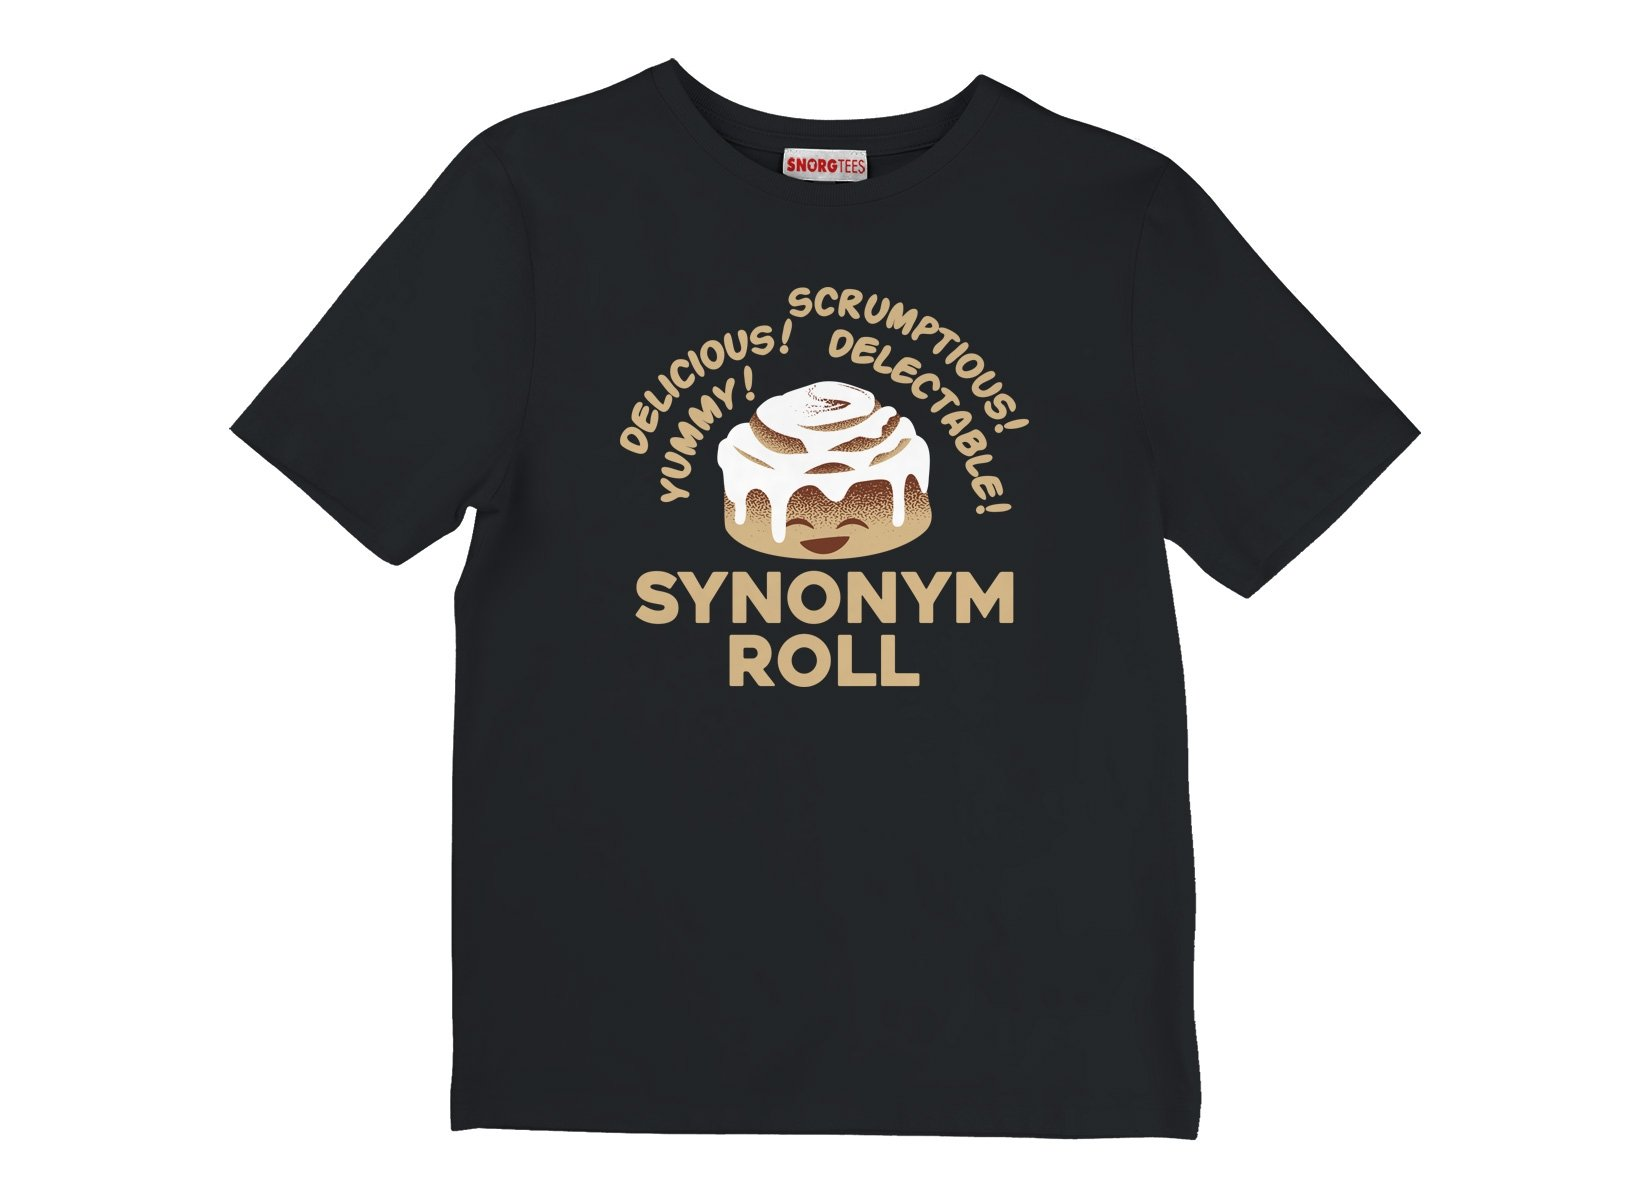 Synonym Roll on Kids T-Shirt